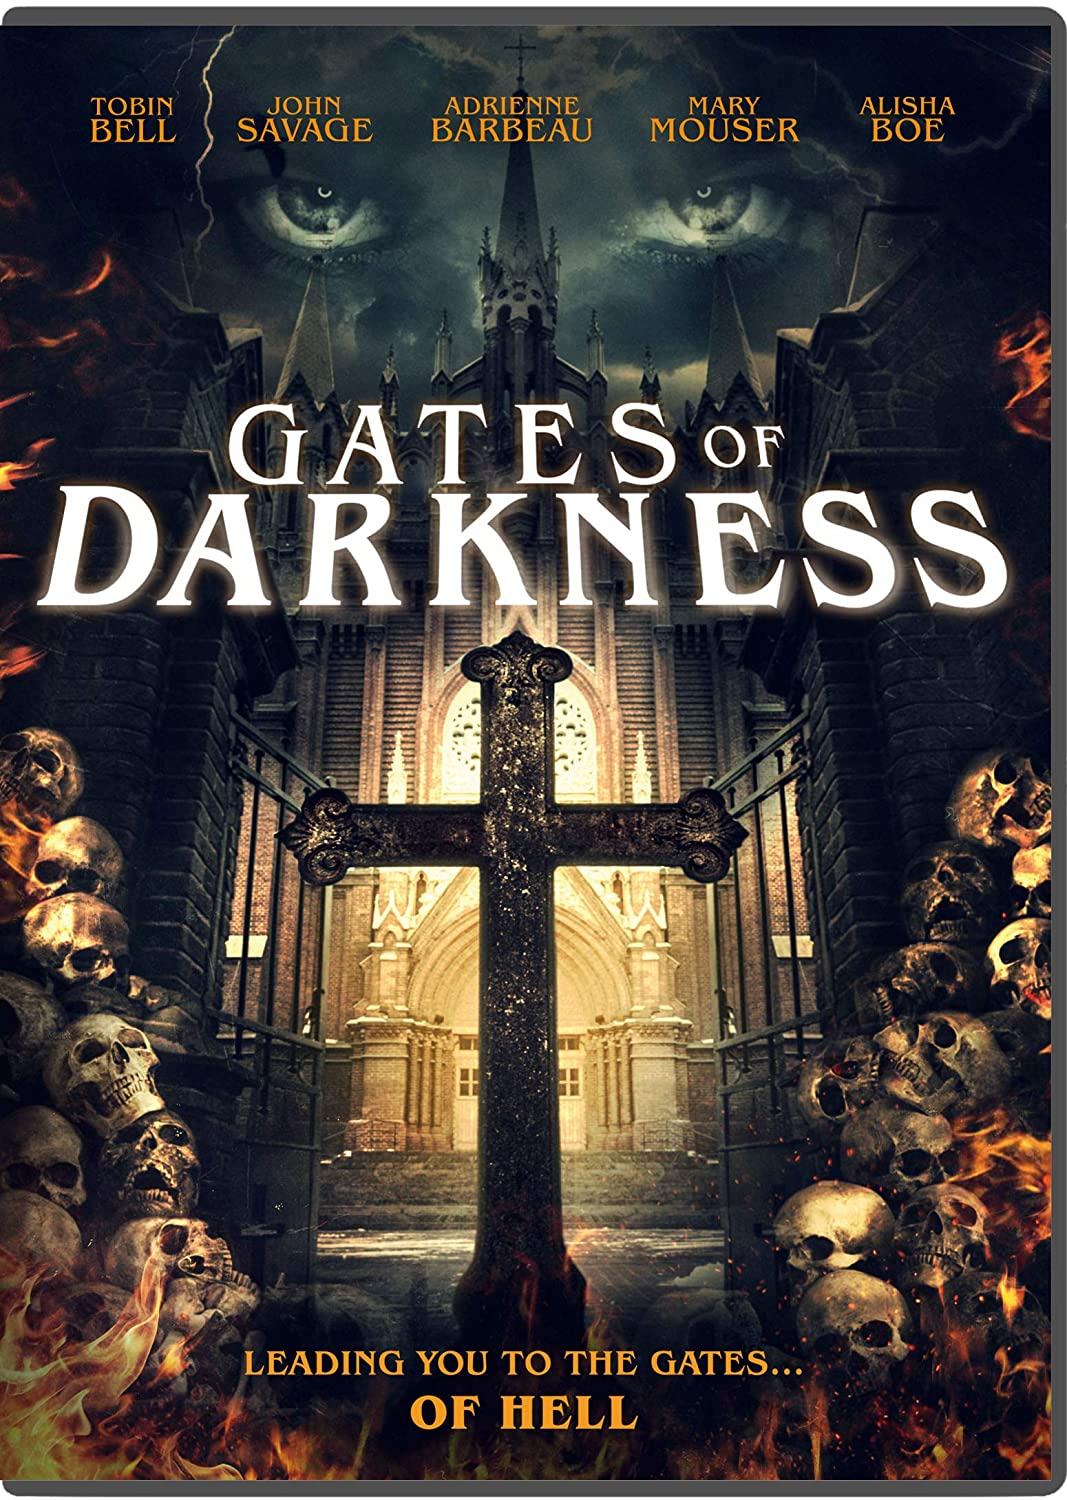 Download Gates of Darkness (2019) BluRay 720p Dual Audio [Hindi (Voice Over) Dubbed + English] [Full Movie] Full Movie Online On 1xcinema.com